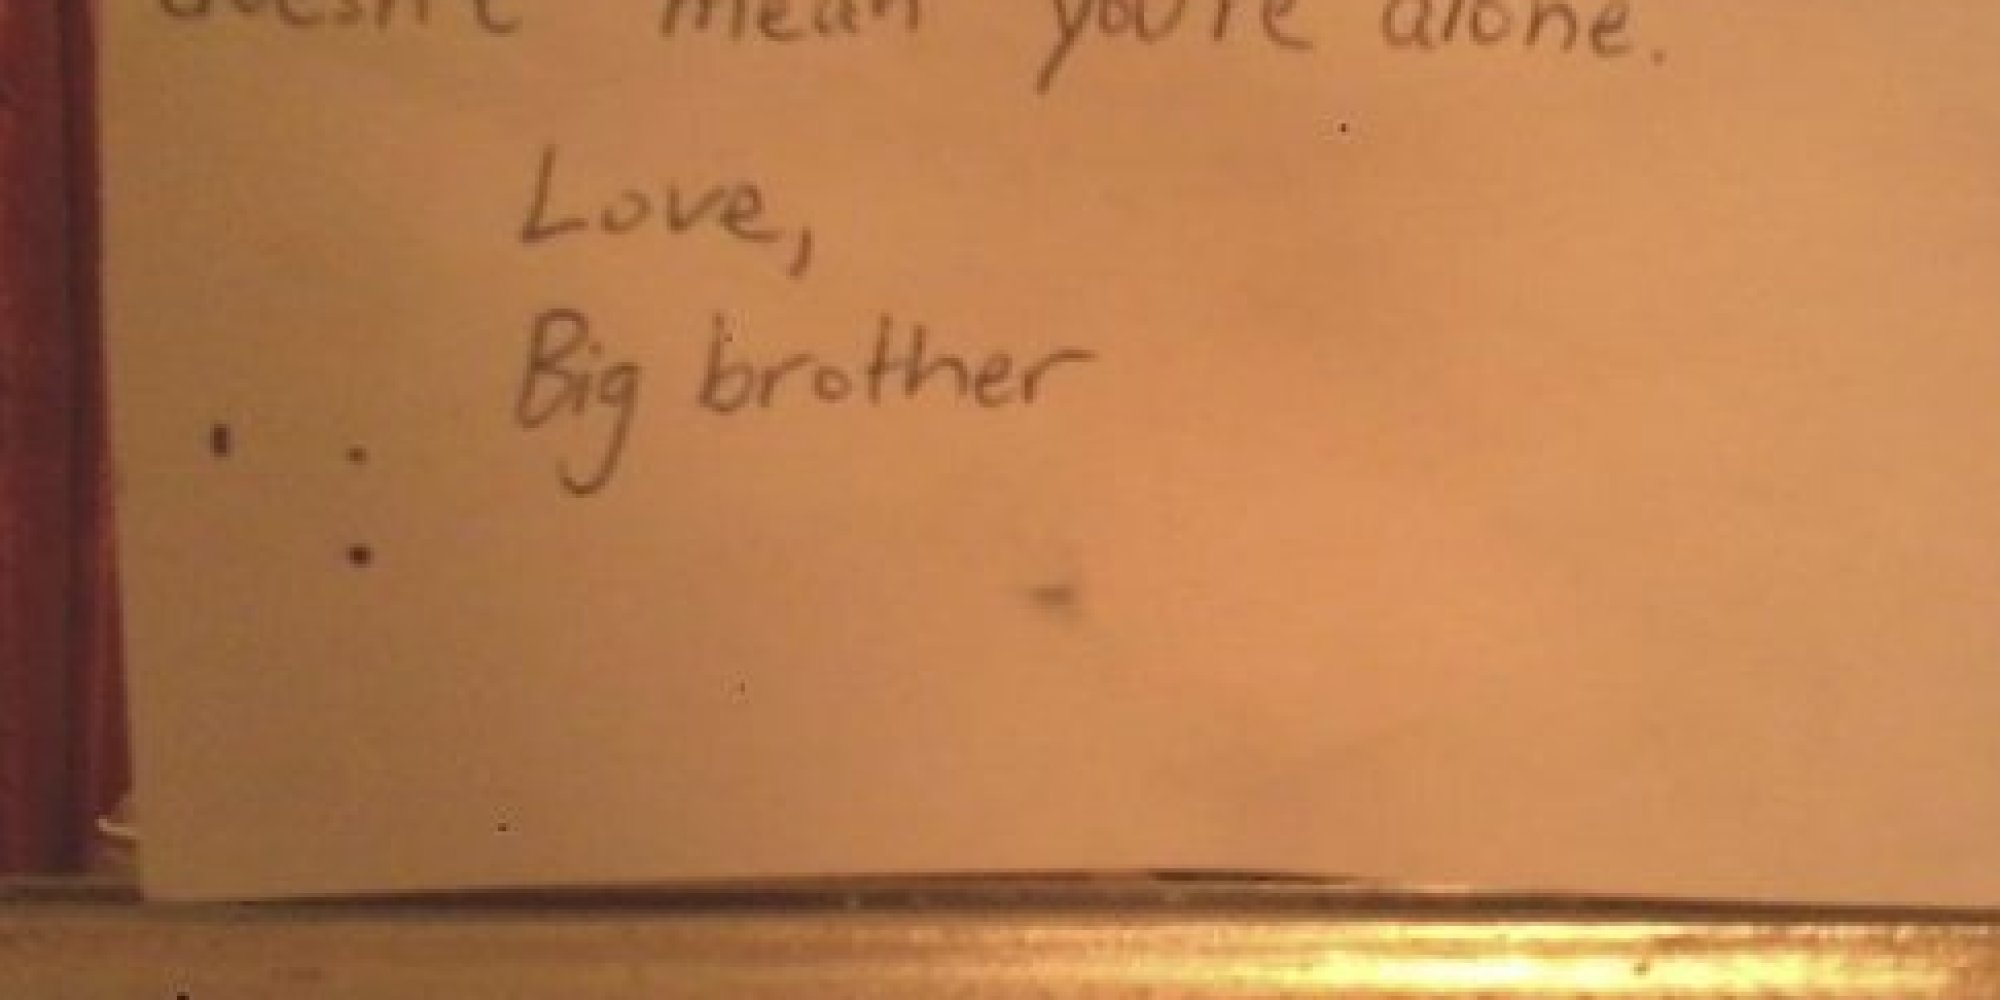 Big Brother Protecting Little Sister Quotes. QuotesGram